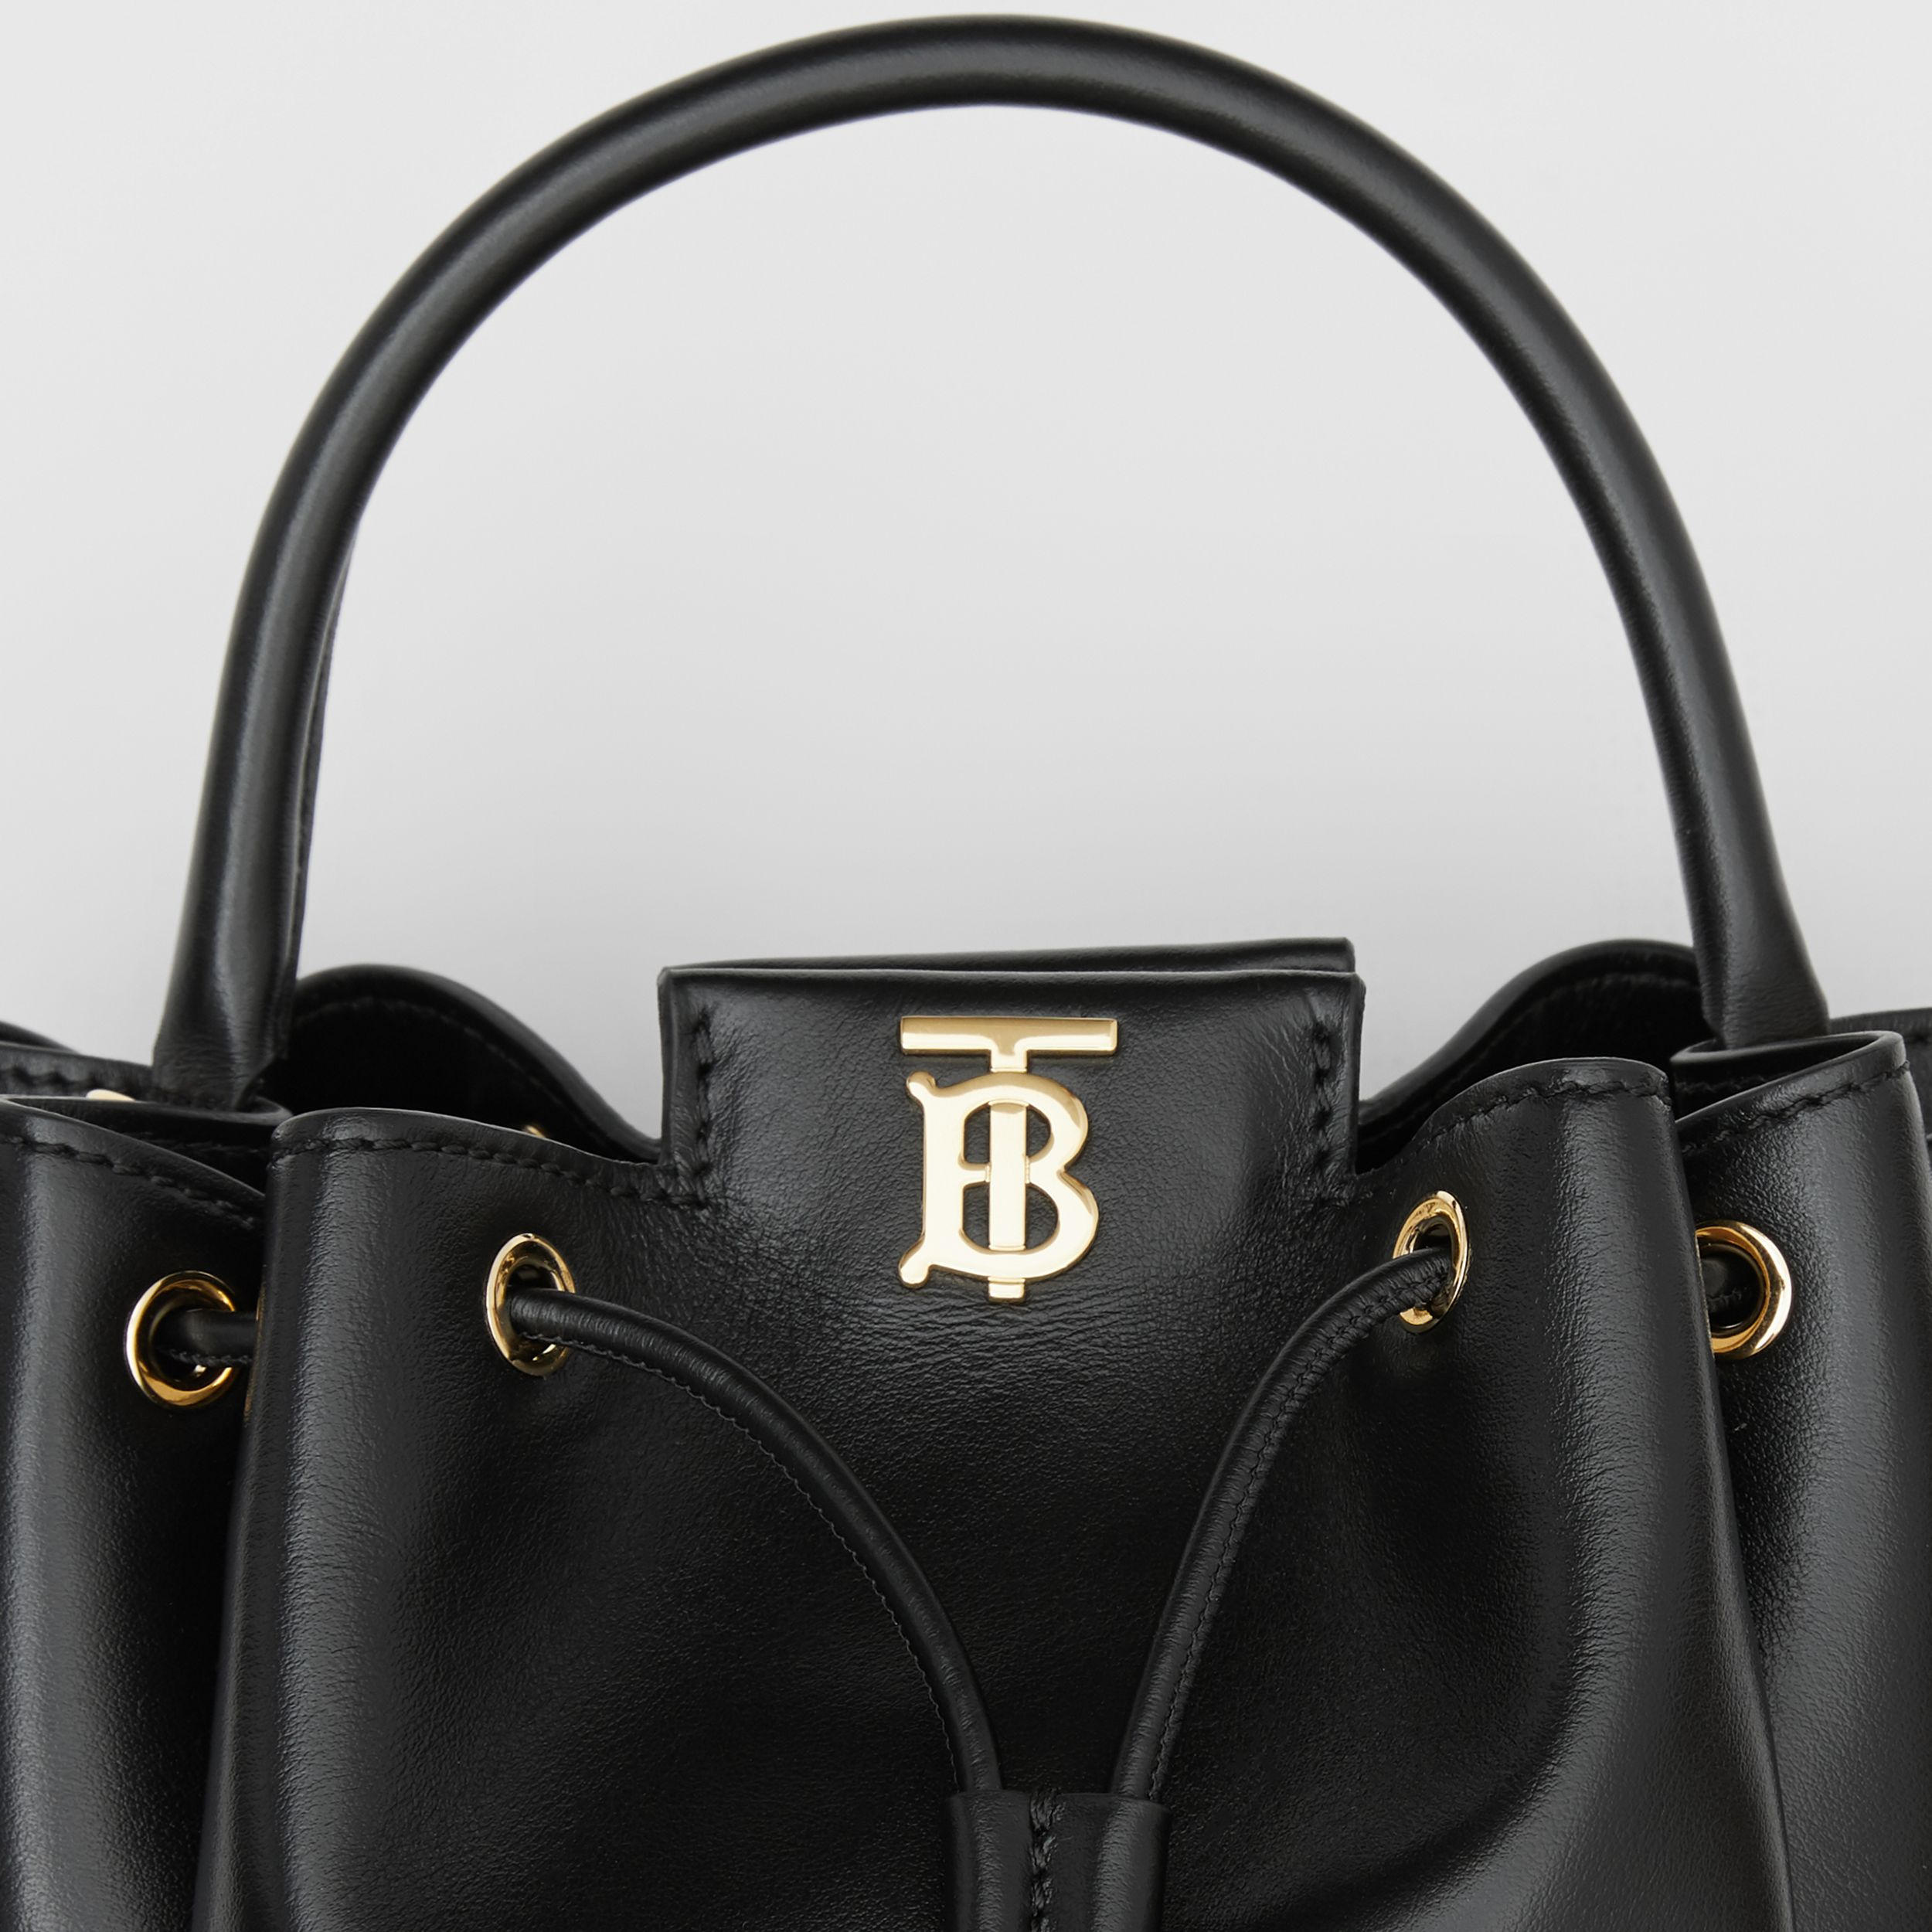 Monogram Motif Leather Bucket Bag in Black - Women | Burberry United Kingdom - 2